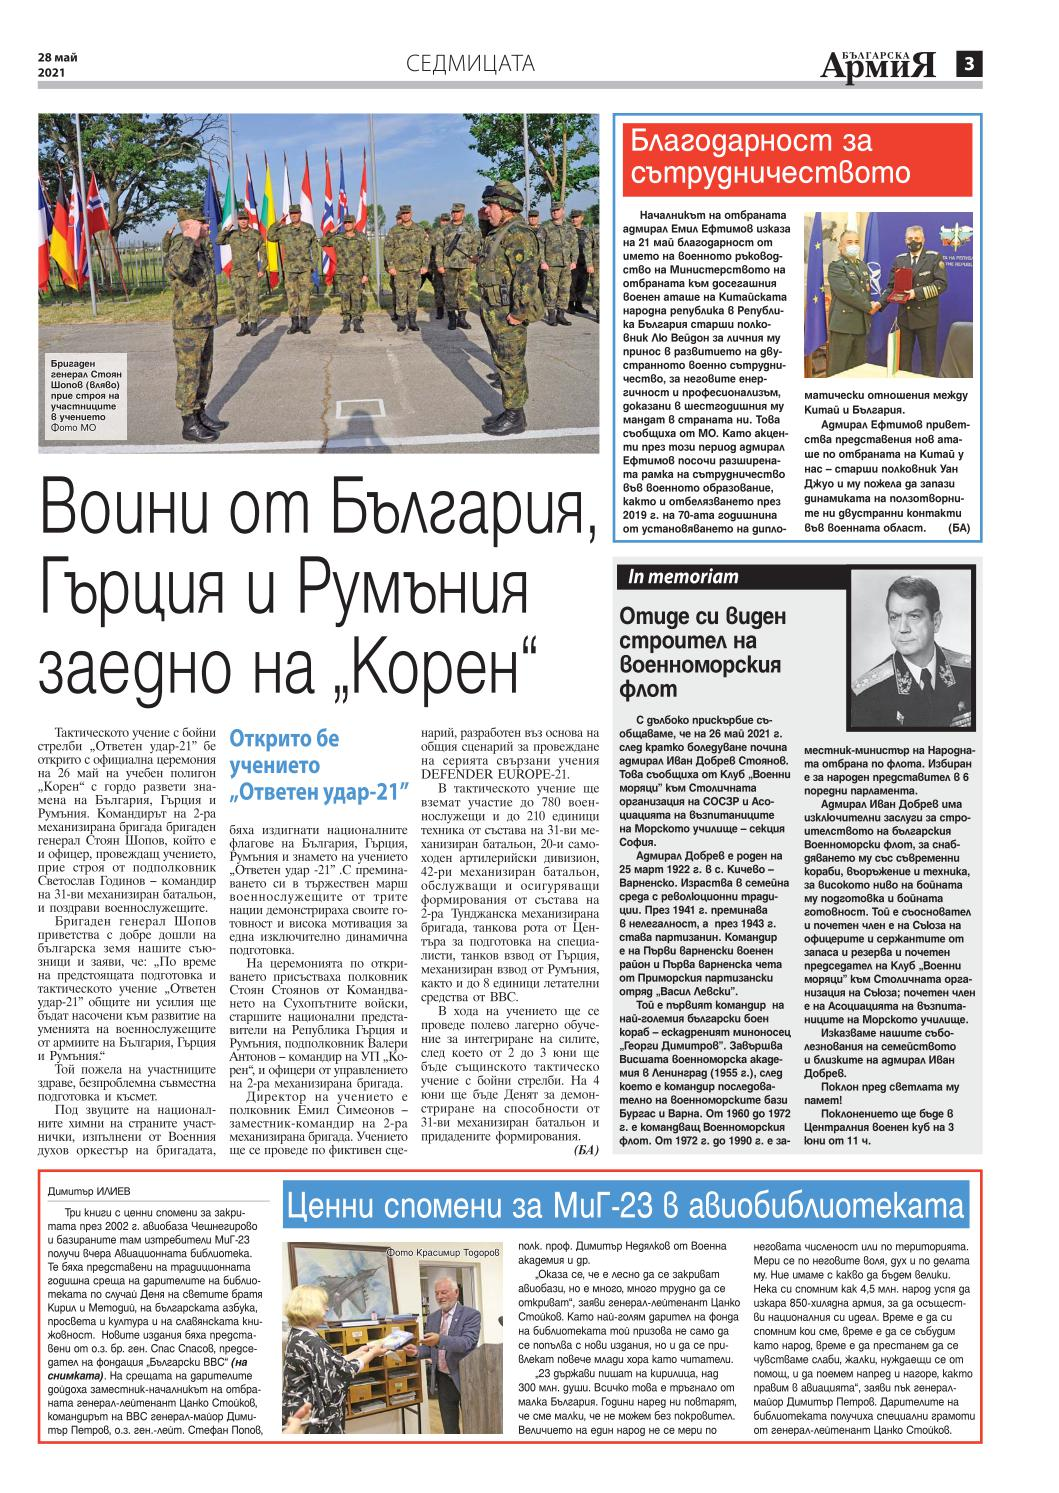 https://armymedia.bg/wp-content/uploads/2021/05/03.page1_-3.jpg